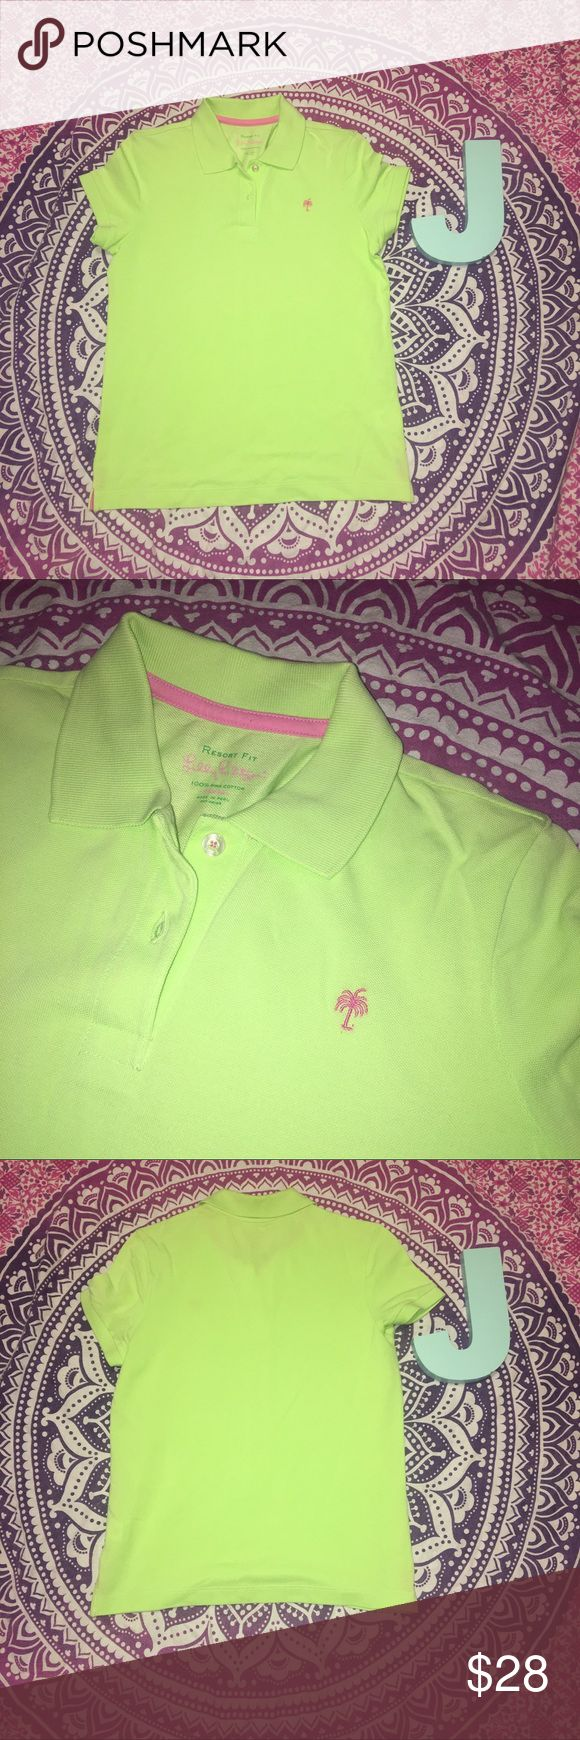 """Lilly Pulitzer Resort Fit Lime Green Polo Shirt Lilly Pulitzer polo shirt. Lime green. Pink palm tree. Resort fit. 100% pima cotton. Size XS. Shoulder to Shoulder: 13.5"""" Pit to Pit: 17"""" Lilly Pulitzer Tops"""